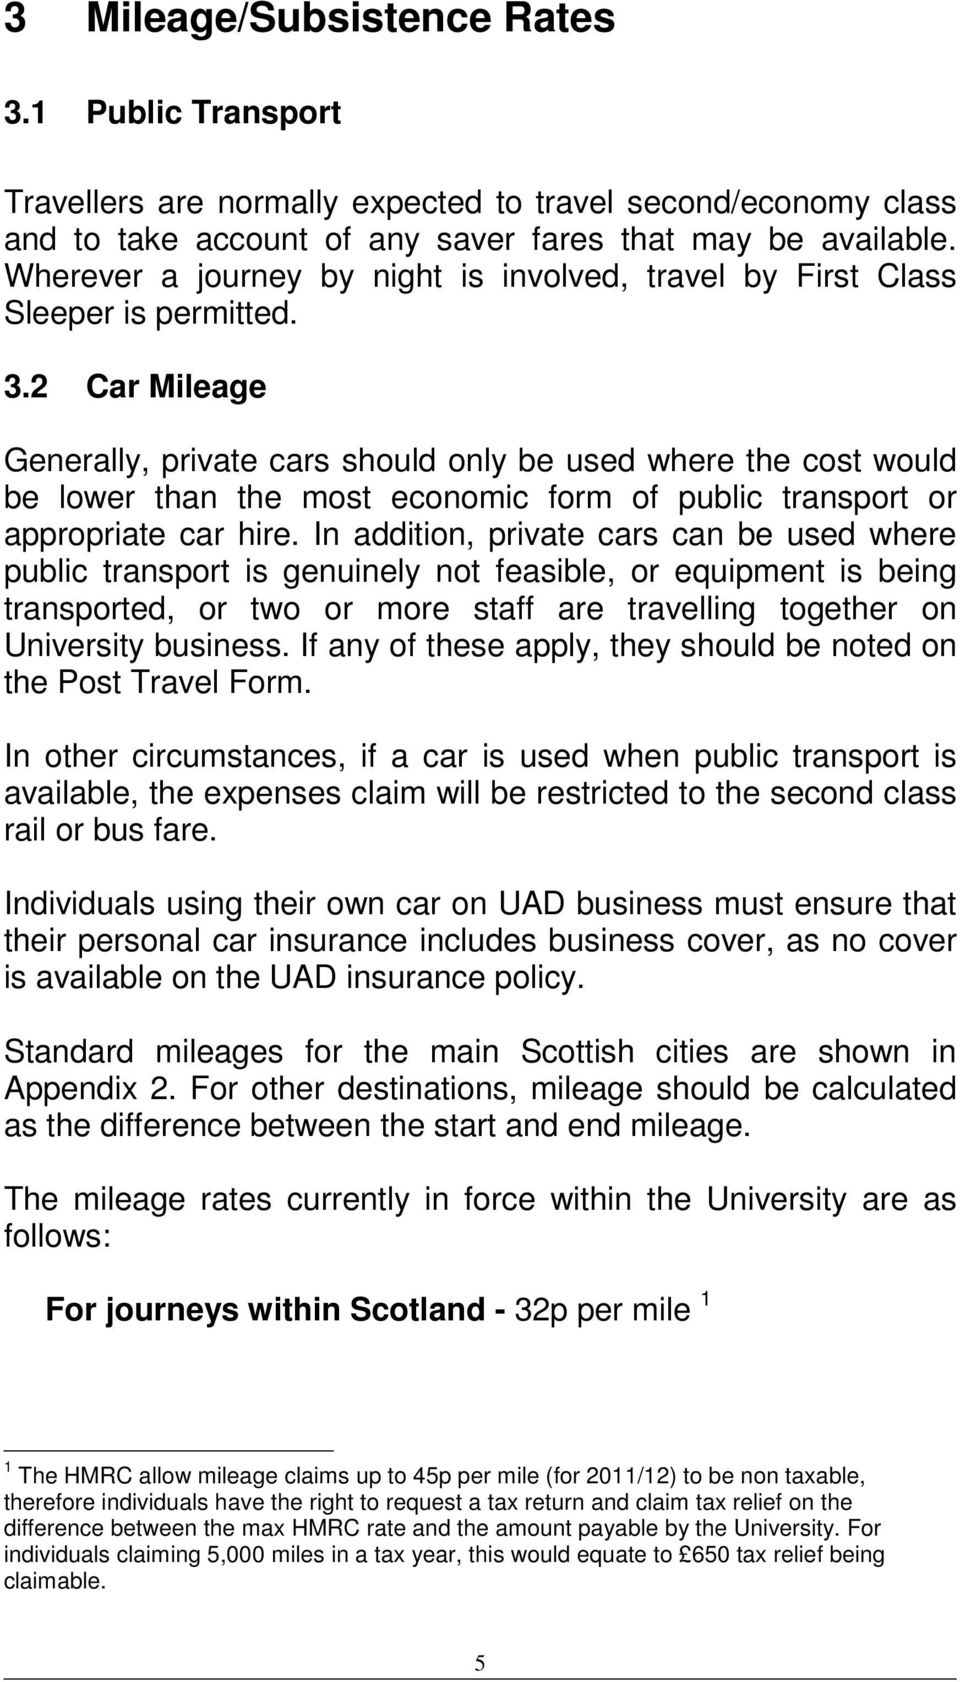 2 Car Mileage Generally, private cars should only be used where the cost would be lower than the most economic form of public transport or appropriate car hire.